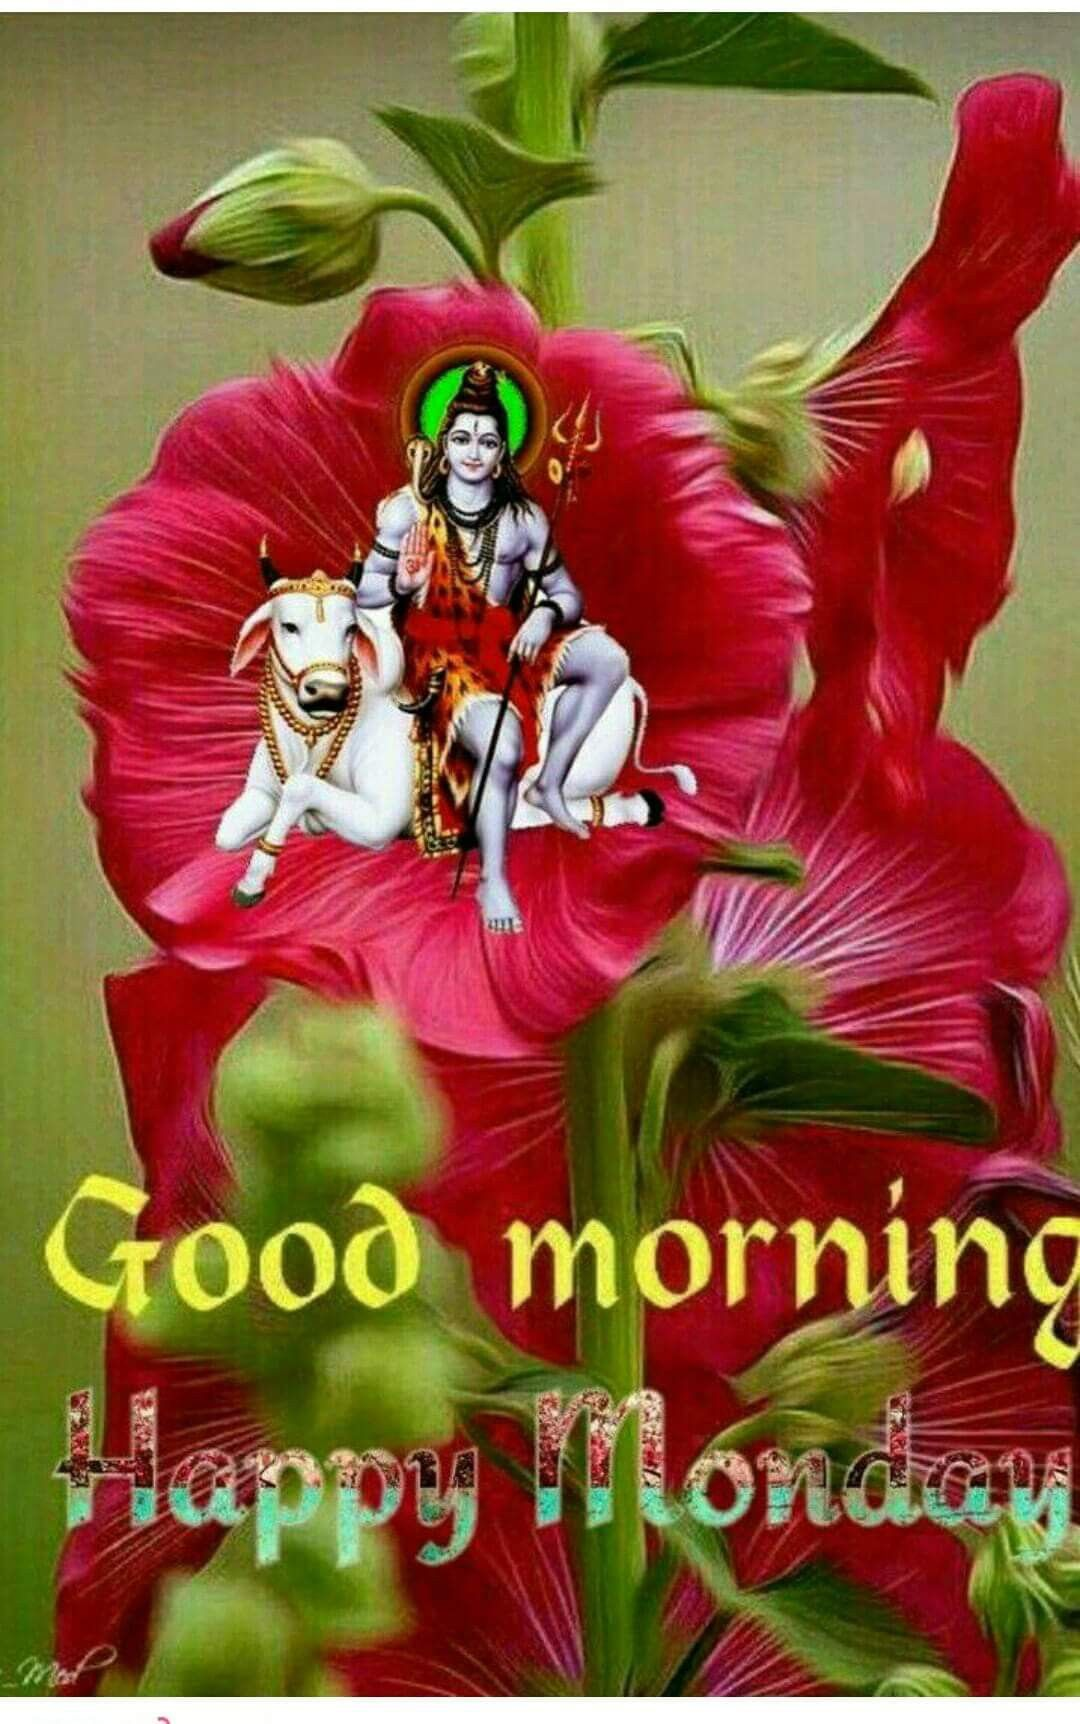 Good morning gif images ...